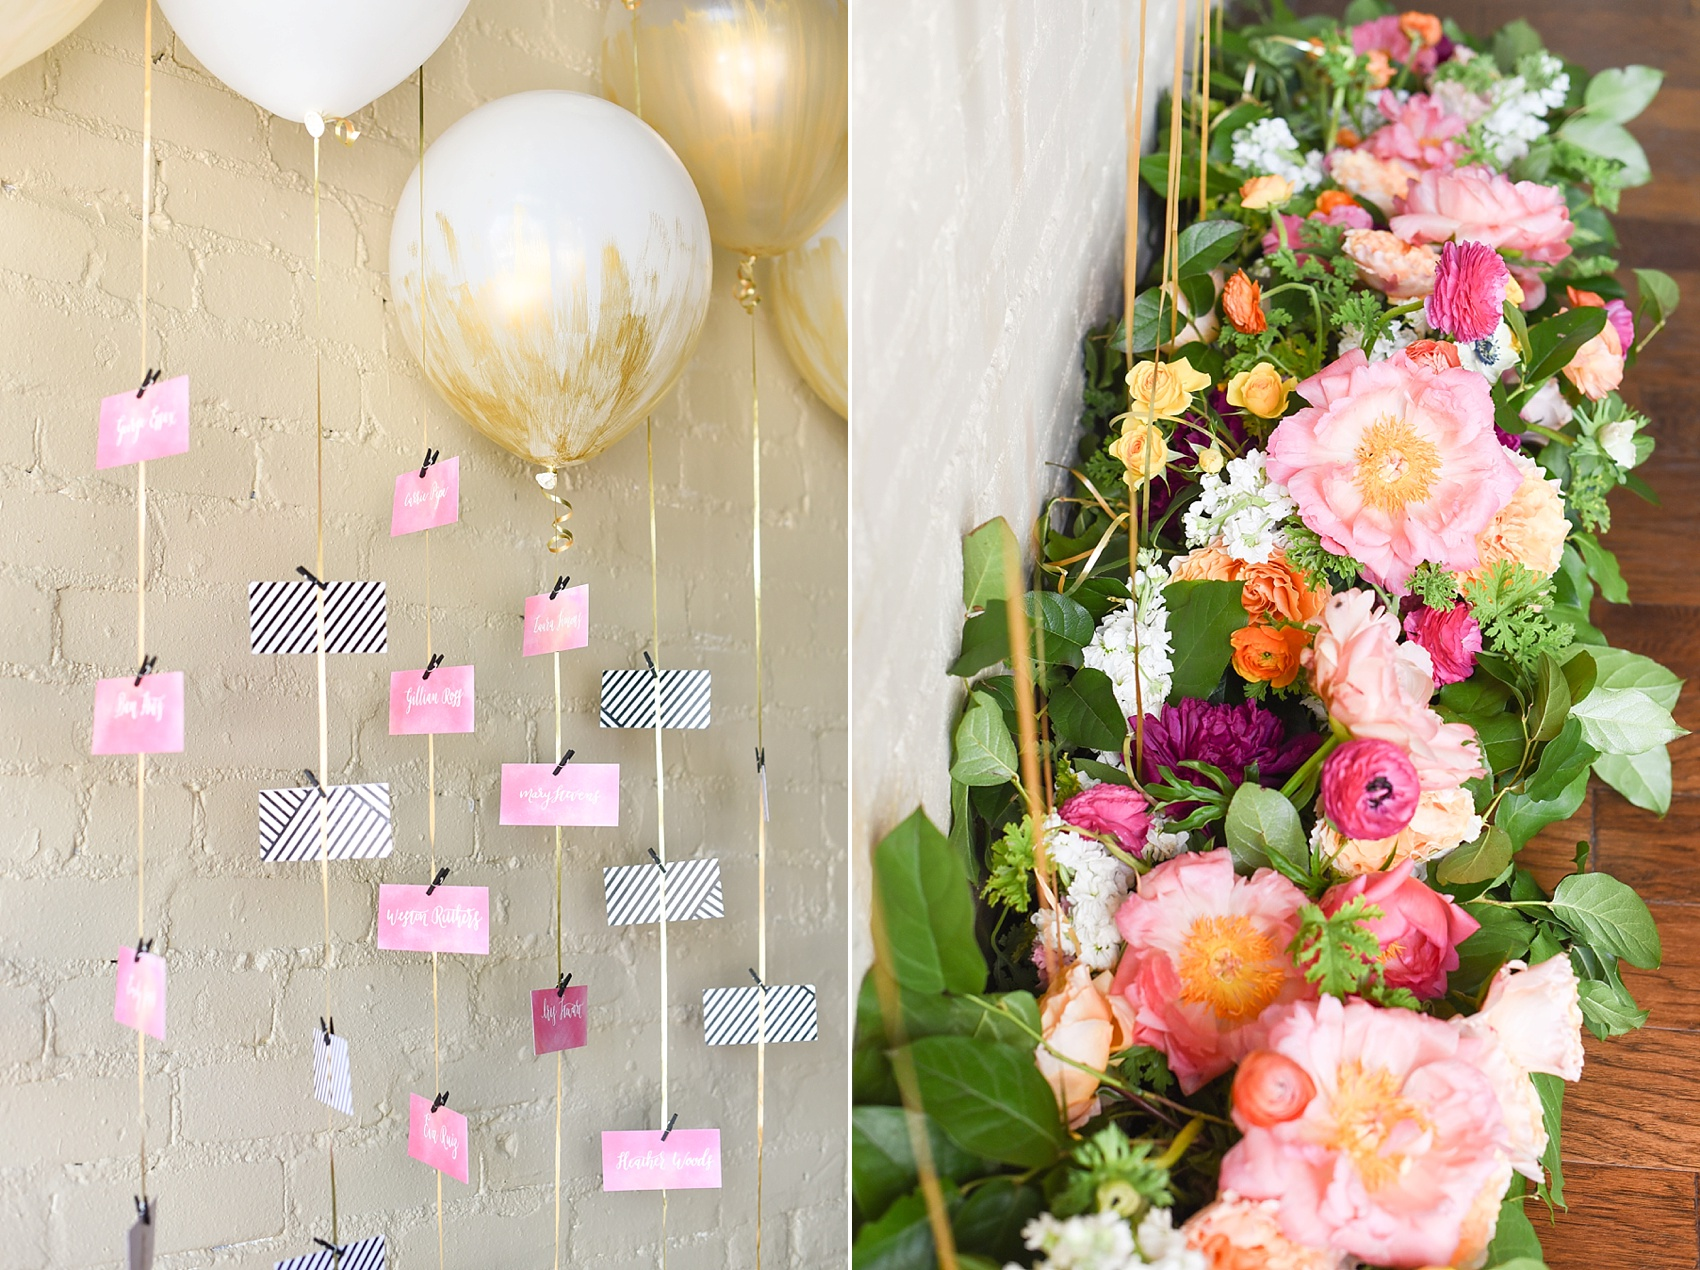 Modern pink and orange wedding ideas balloon escort card display. Photos by Mikkel Paige photography, planning by Ashton Events and Every Last Detail.